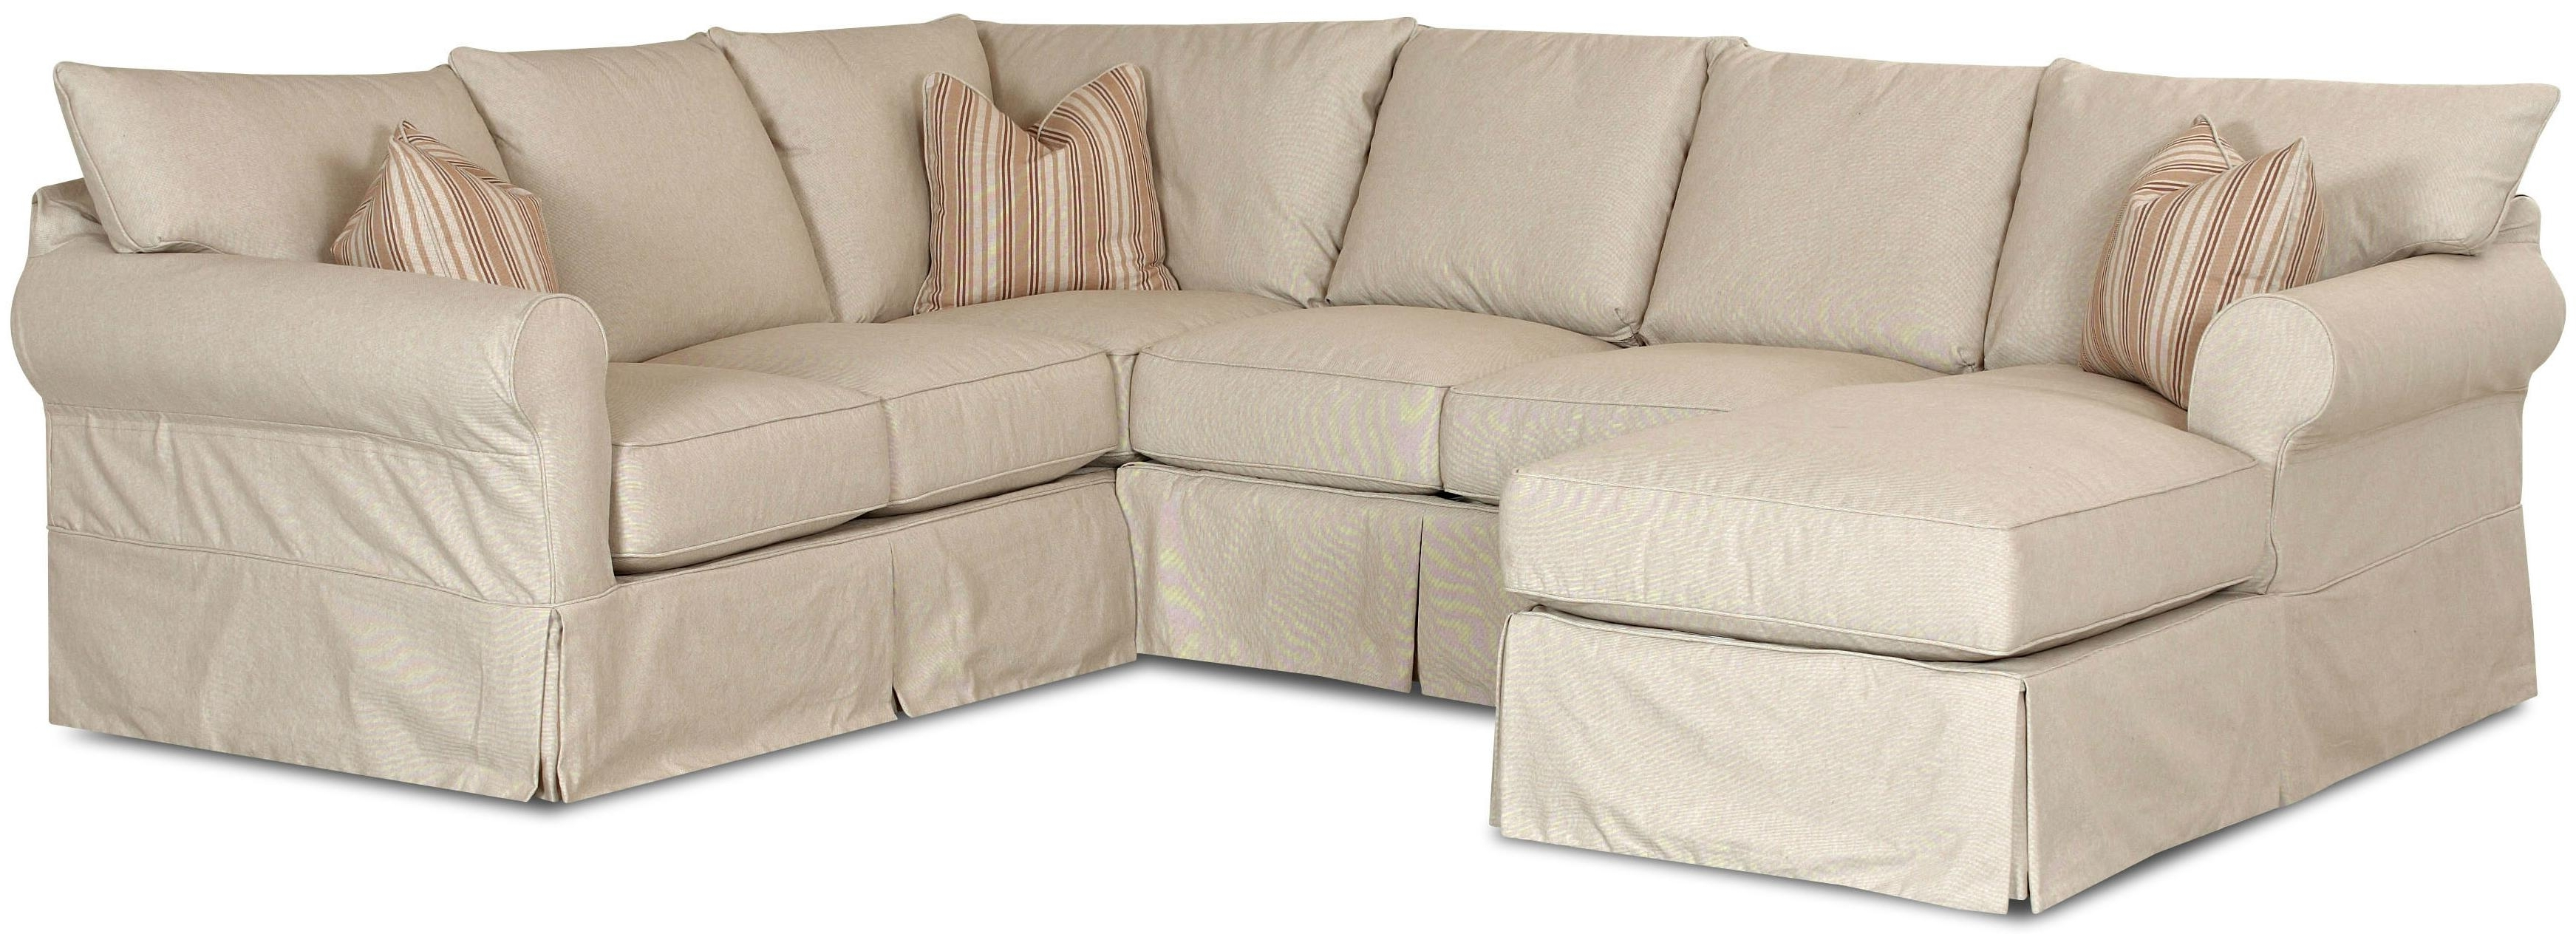 Newest Removable Covers Sectional Sofas With Regard To Sofa Design: Cover Sectional Sofa High Quality Sofa Covers (View 14 of 15)